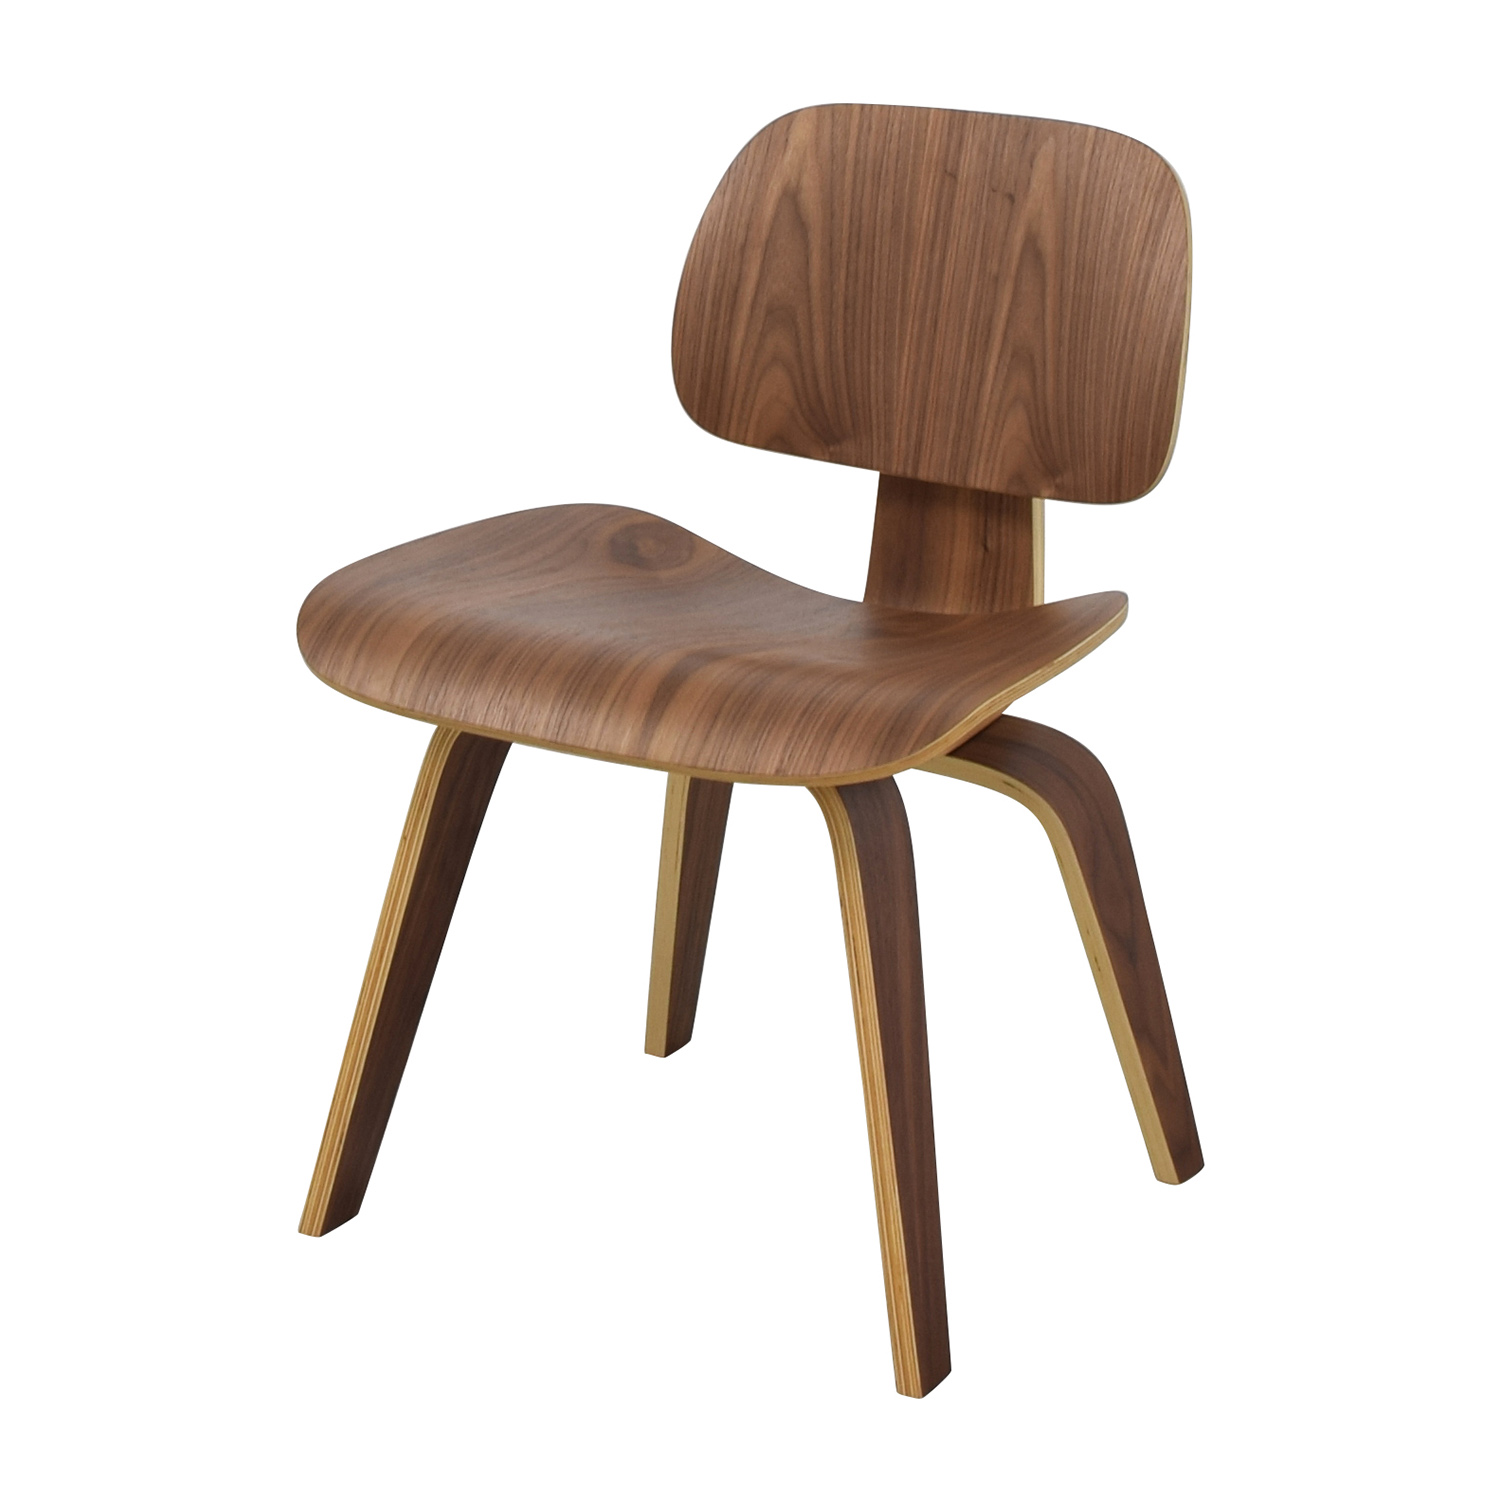 ... InMod InMod Plywood Dining Chair With Wood Legs Chairs ...